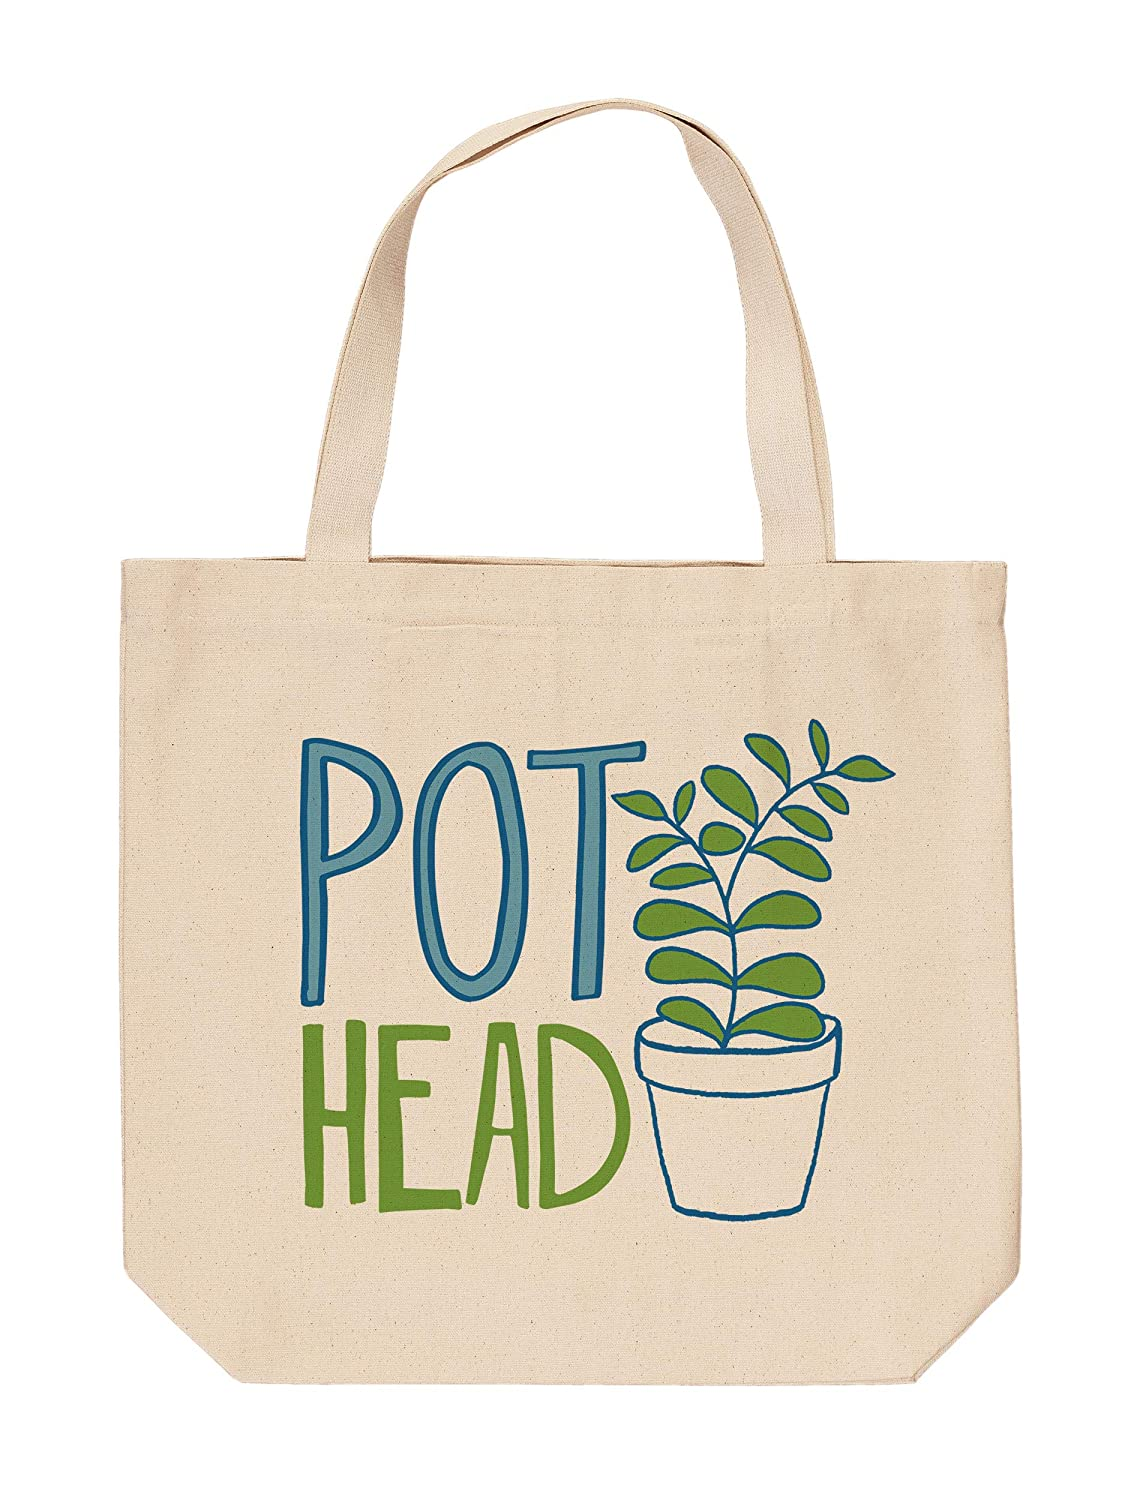 b39fc06798a1 Amazon.com: Studio M Garden Dirt Pot Head Large Canvas Tote Shopping ...